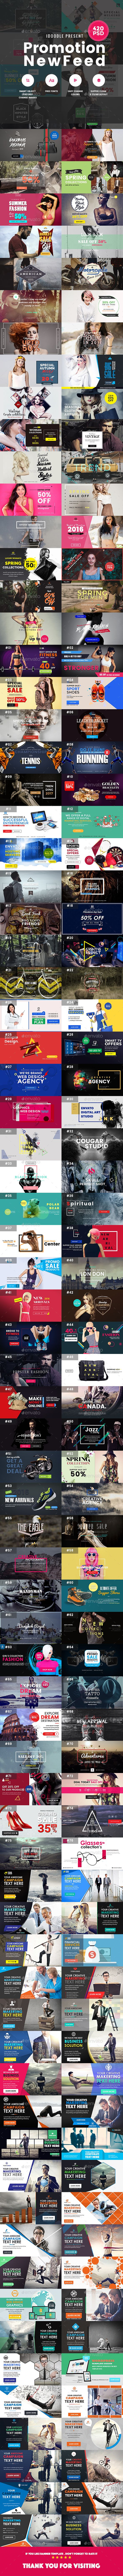 45 best Infograhics images by Hillcrest Strategies on Pinterest